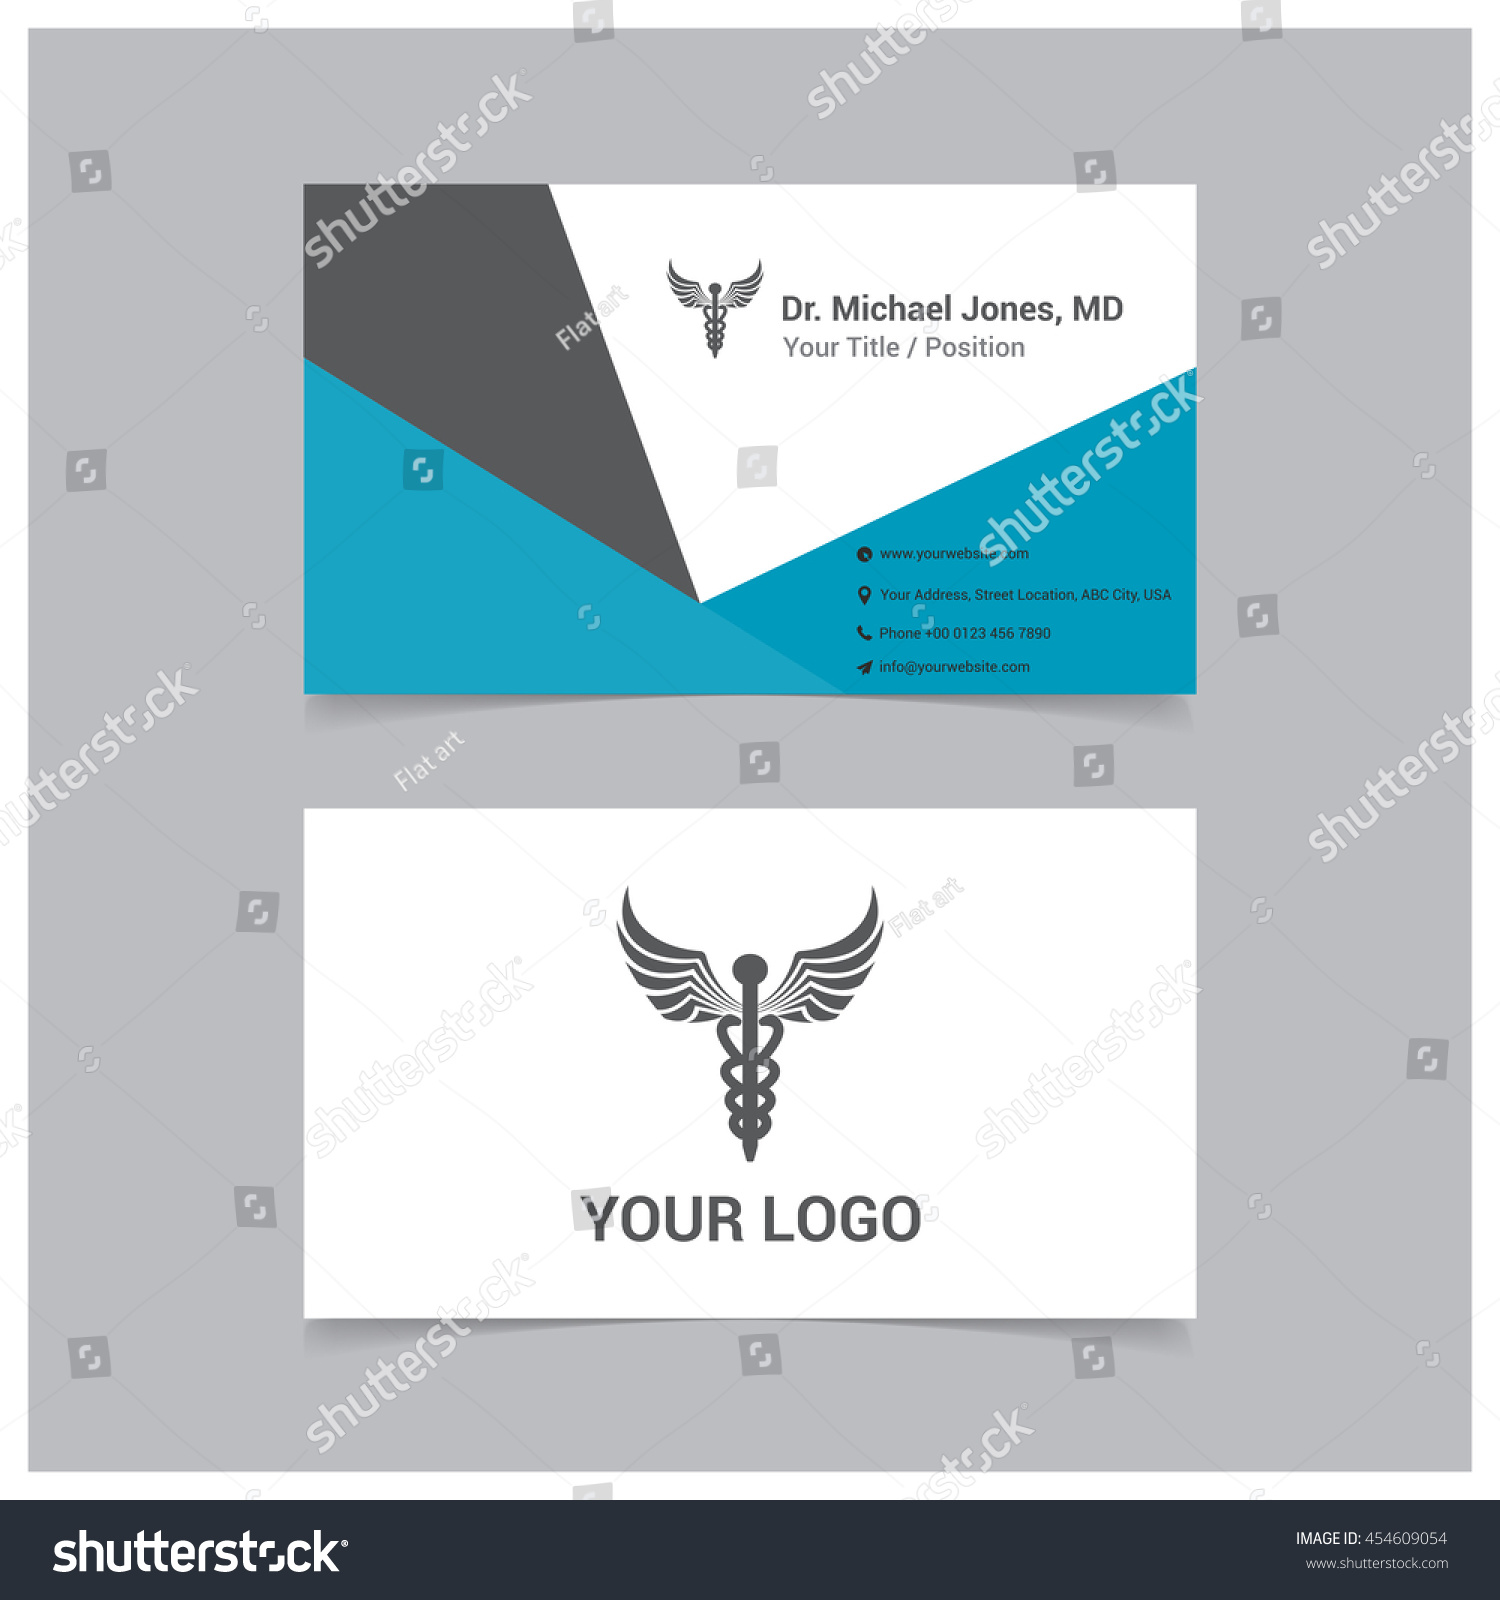 Creative Doctor Business Card